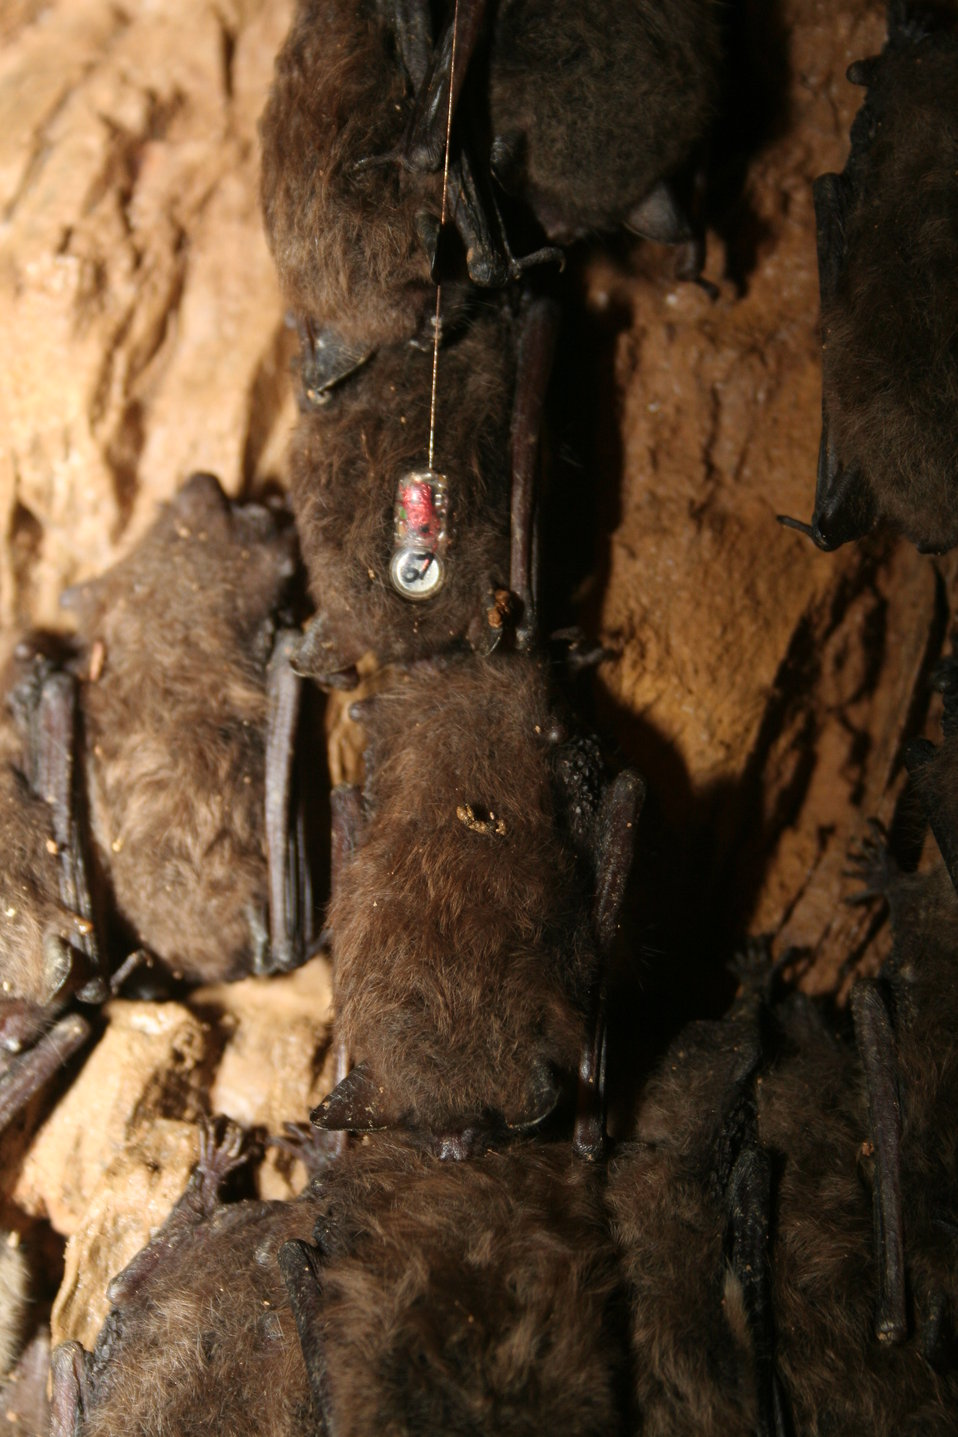 Single hibernating bat at Shindle Iron Mine, Pennsylvania, with attached temperature-sensitive radio transmitter